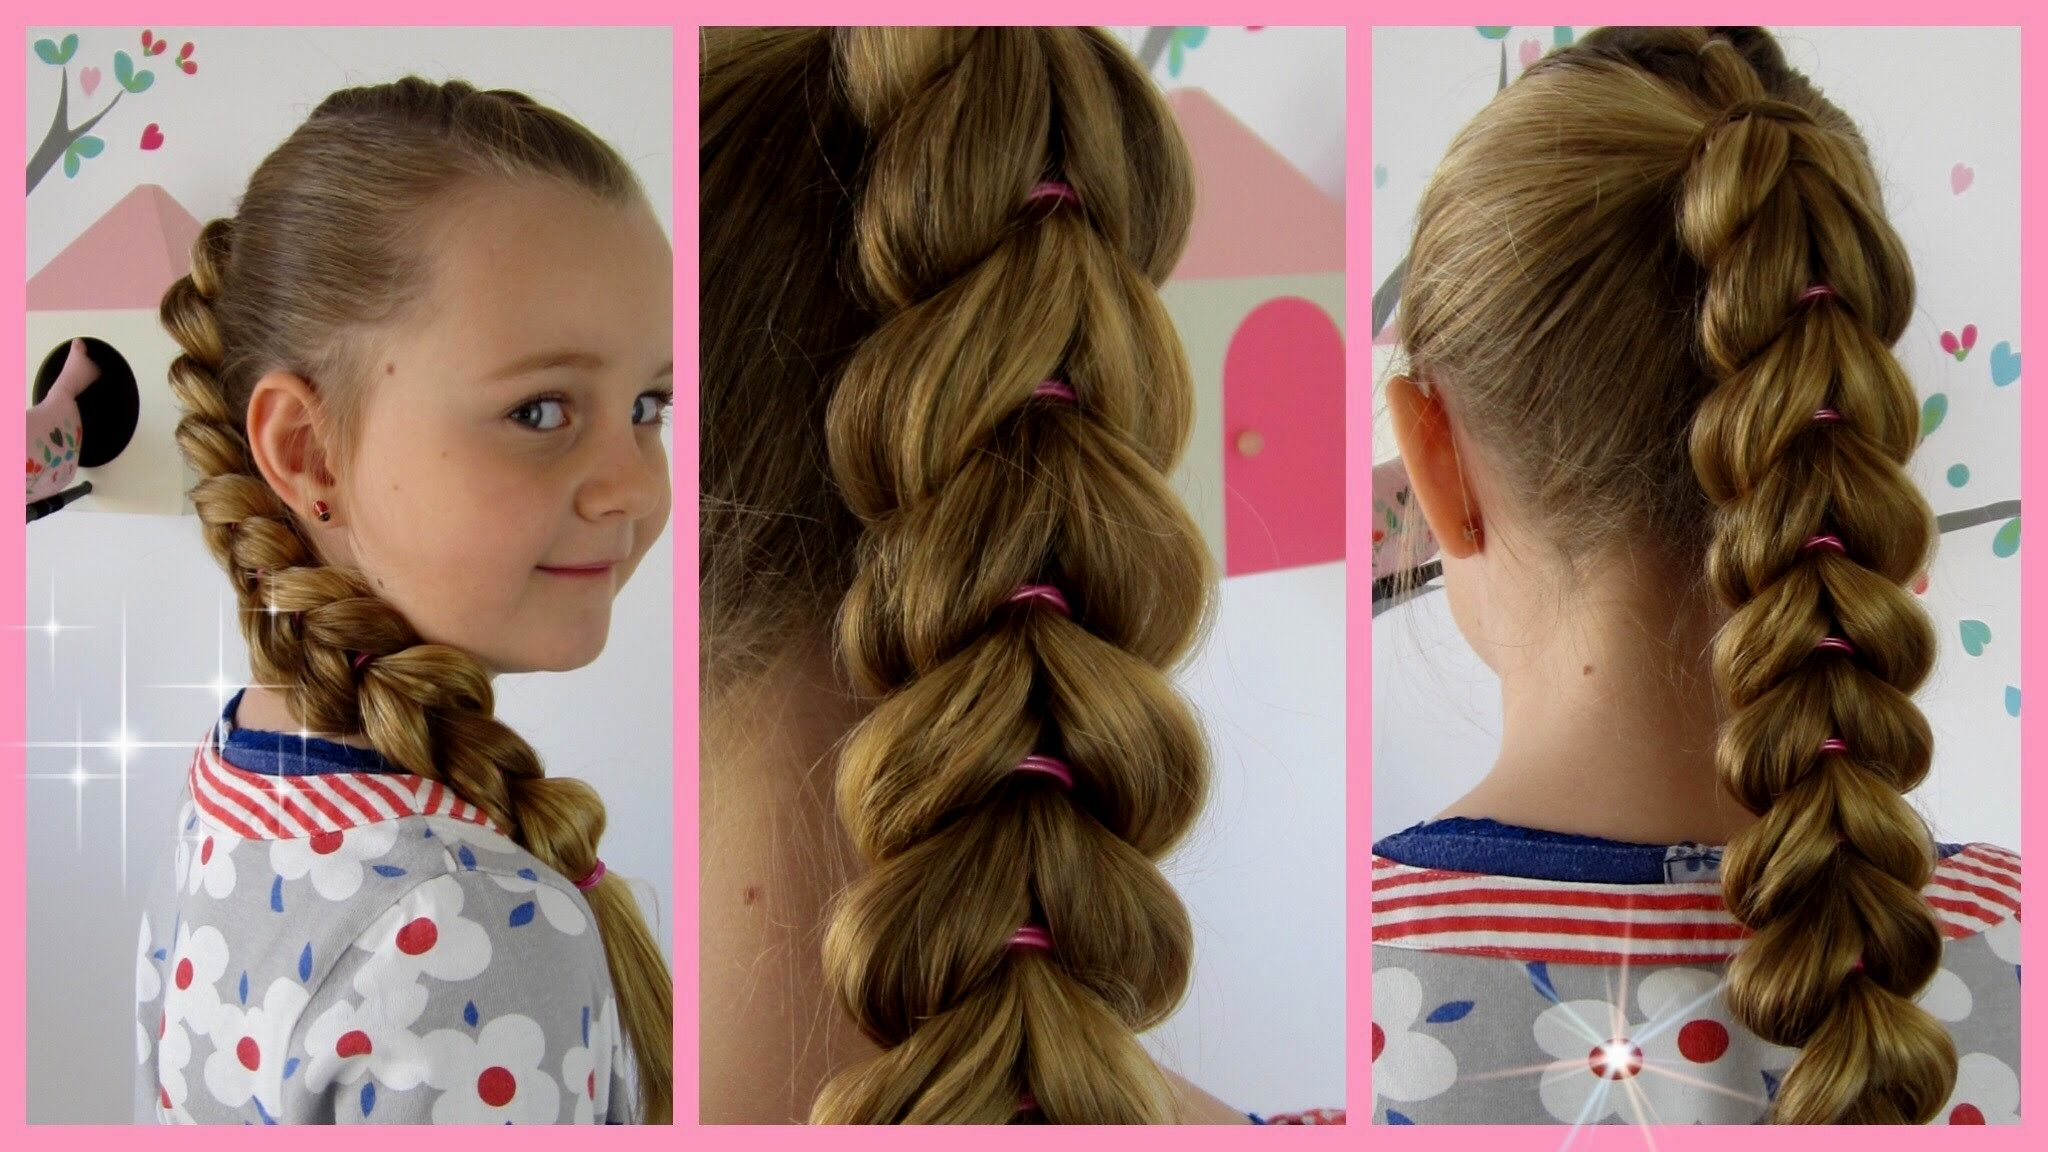 Unbelievable Hairstyles Slim Face Photo-Inspirational Hairstyles Slim Face Gallery